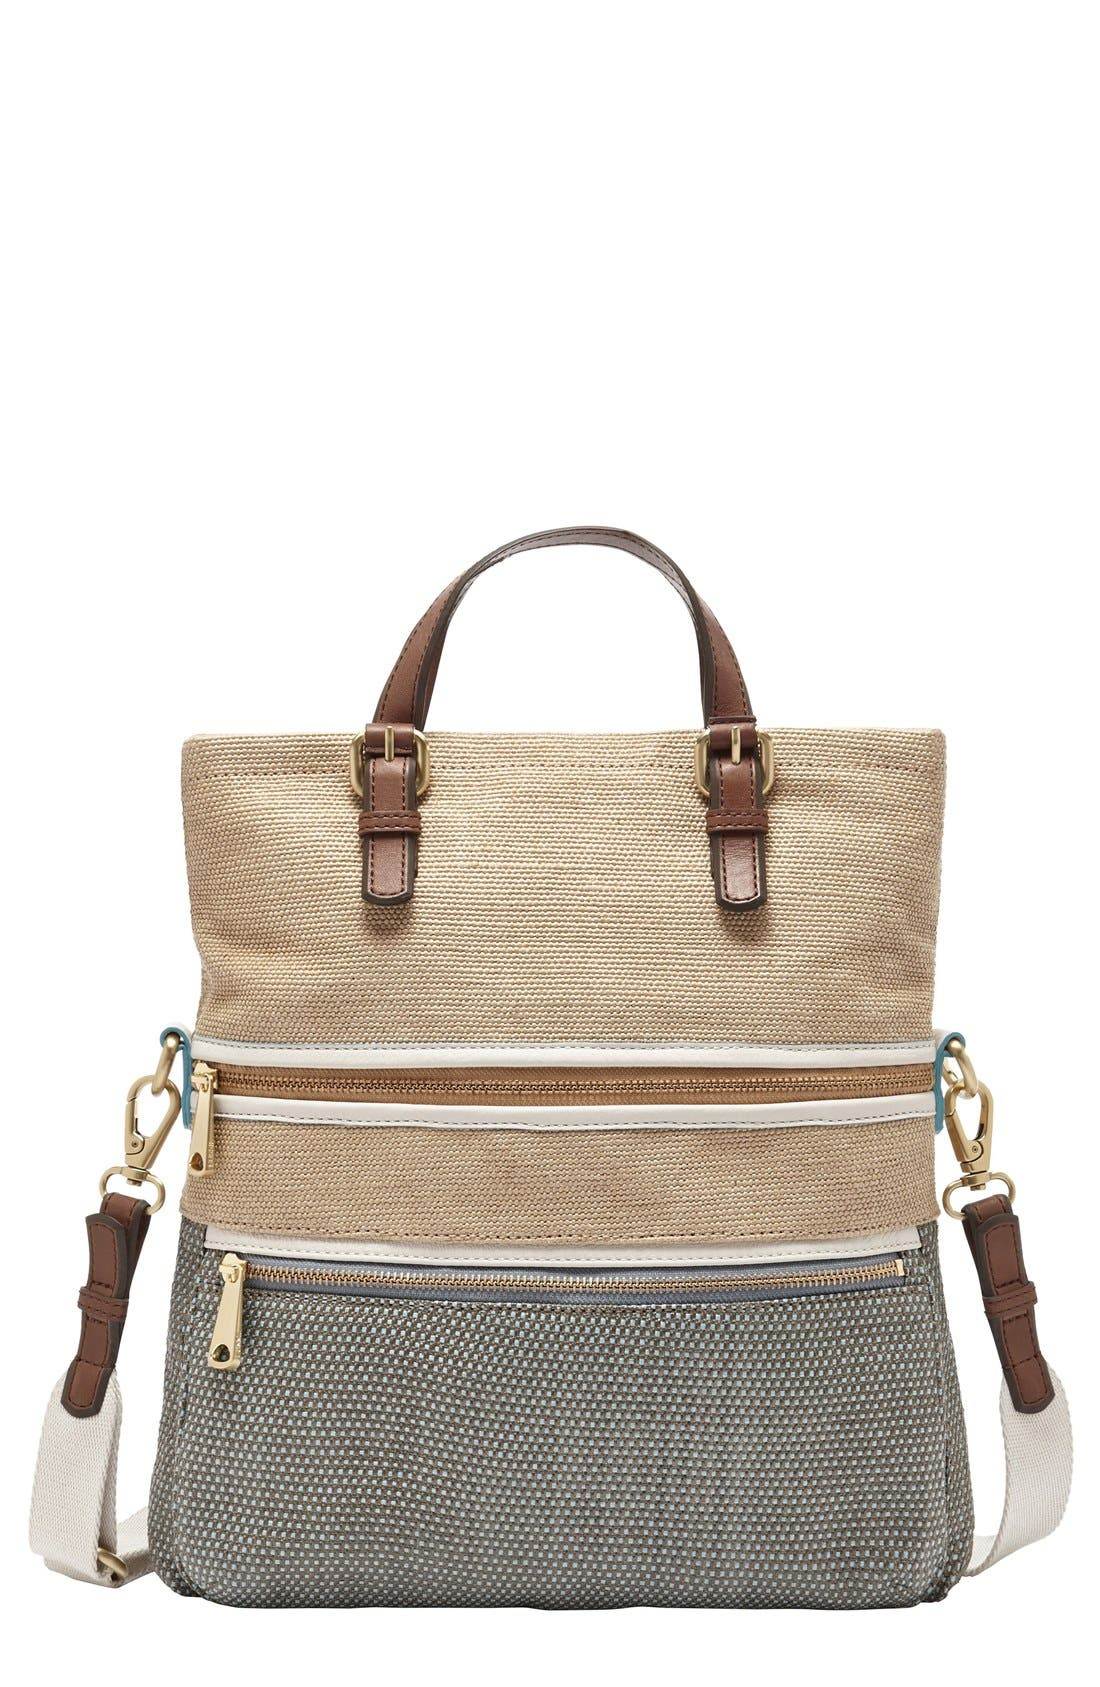 Alternate Image 1 Selected - Fossil 'Explorer' Straw Tote